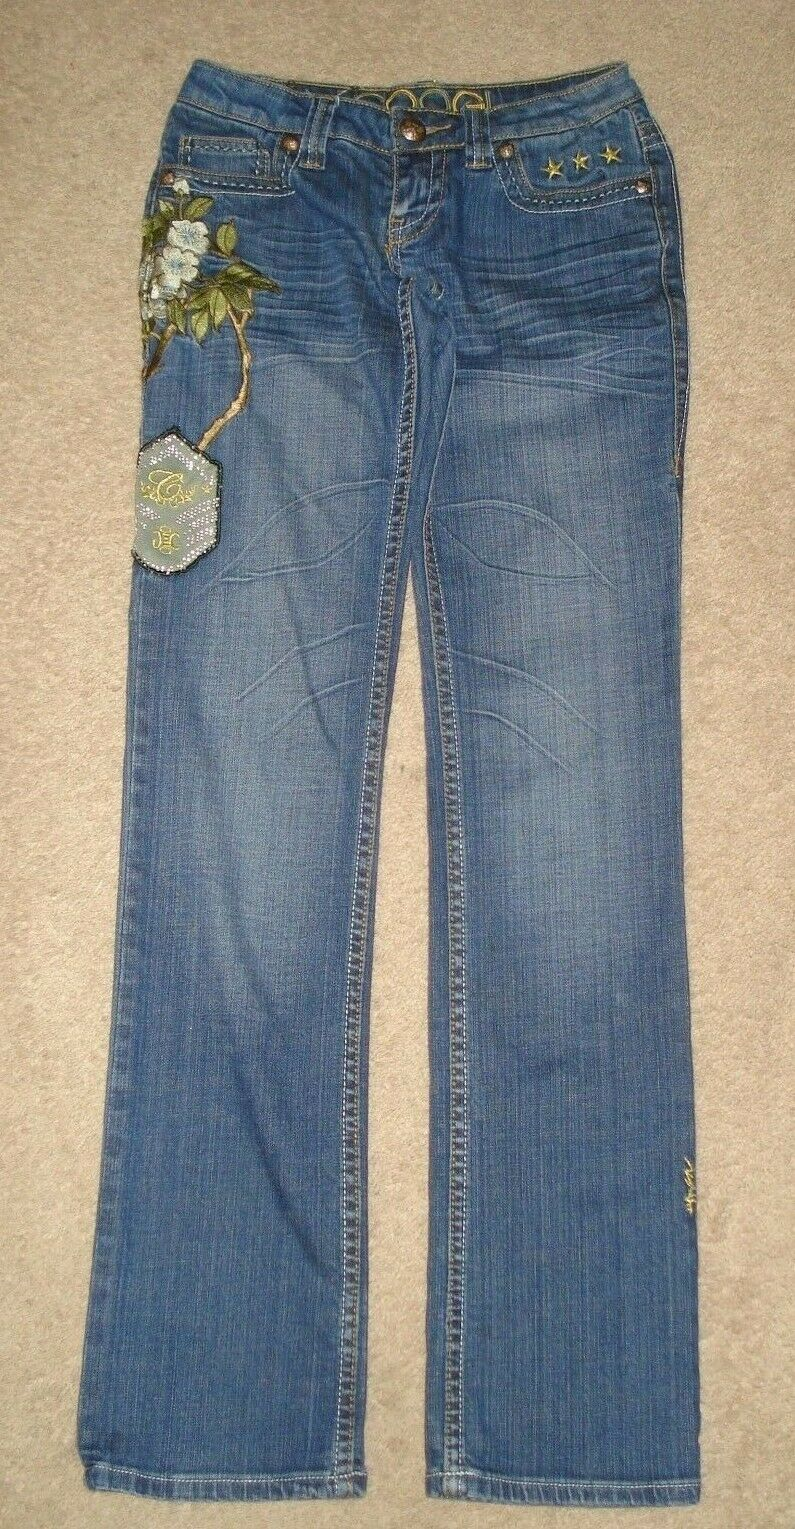 COOGI Australia 1969 Women's Flower & Patch Embossed Jeans Size 1 2